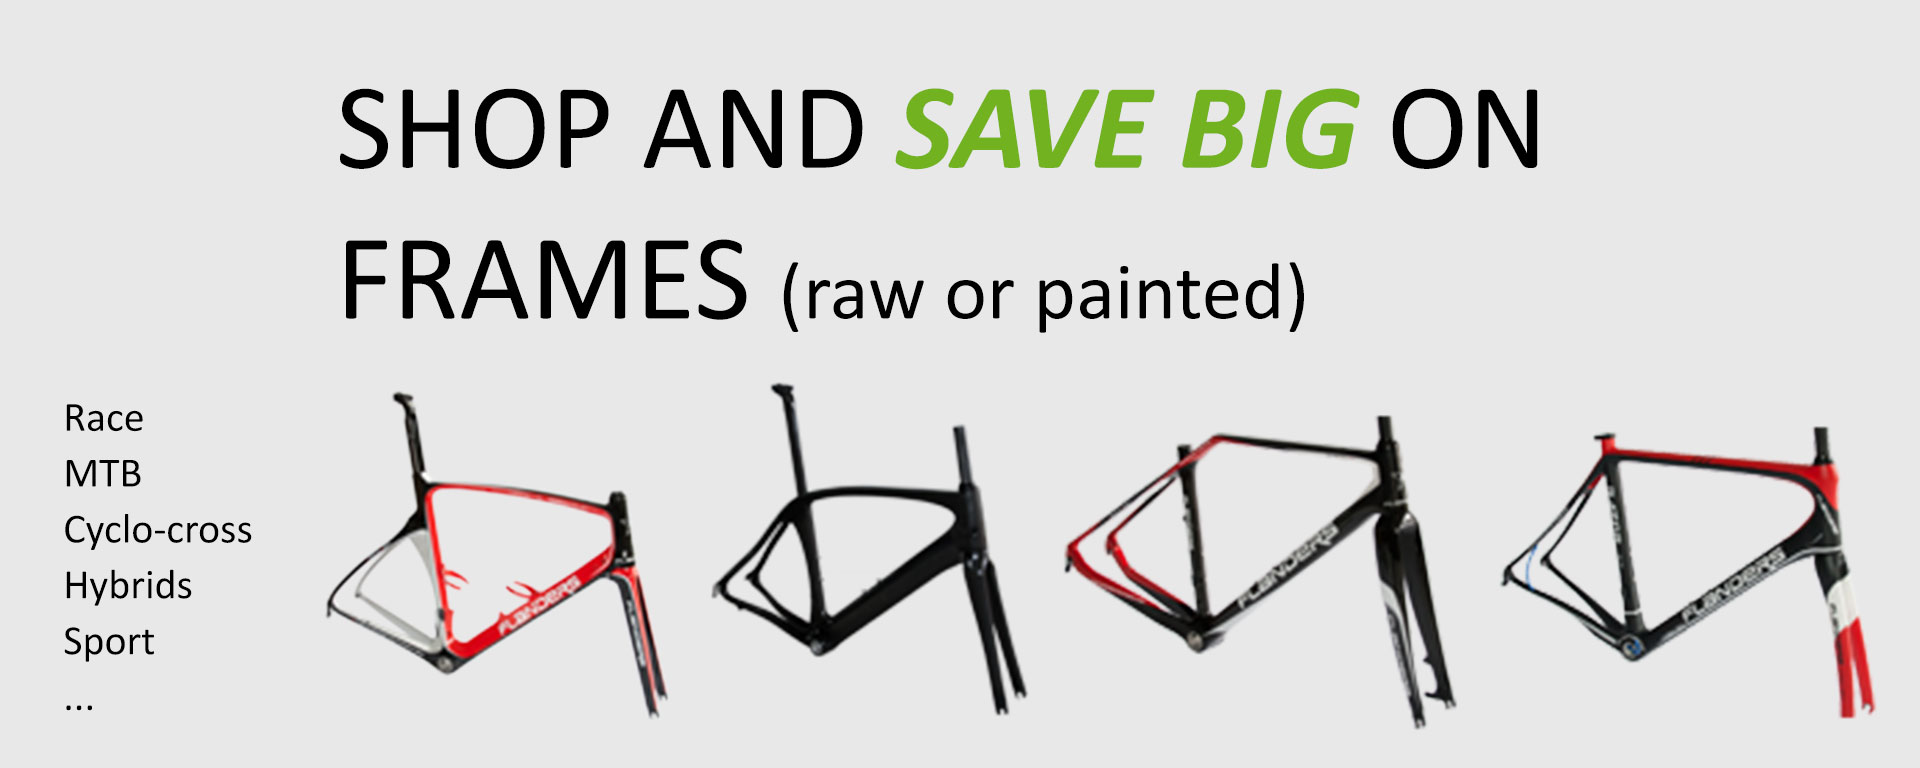 Shop now and save big on frames